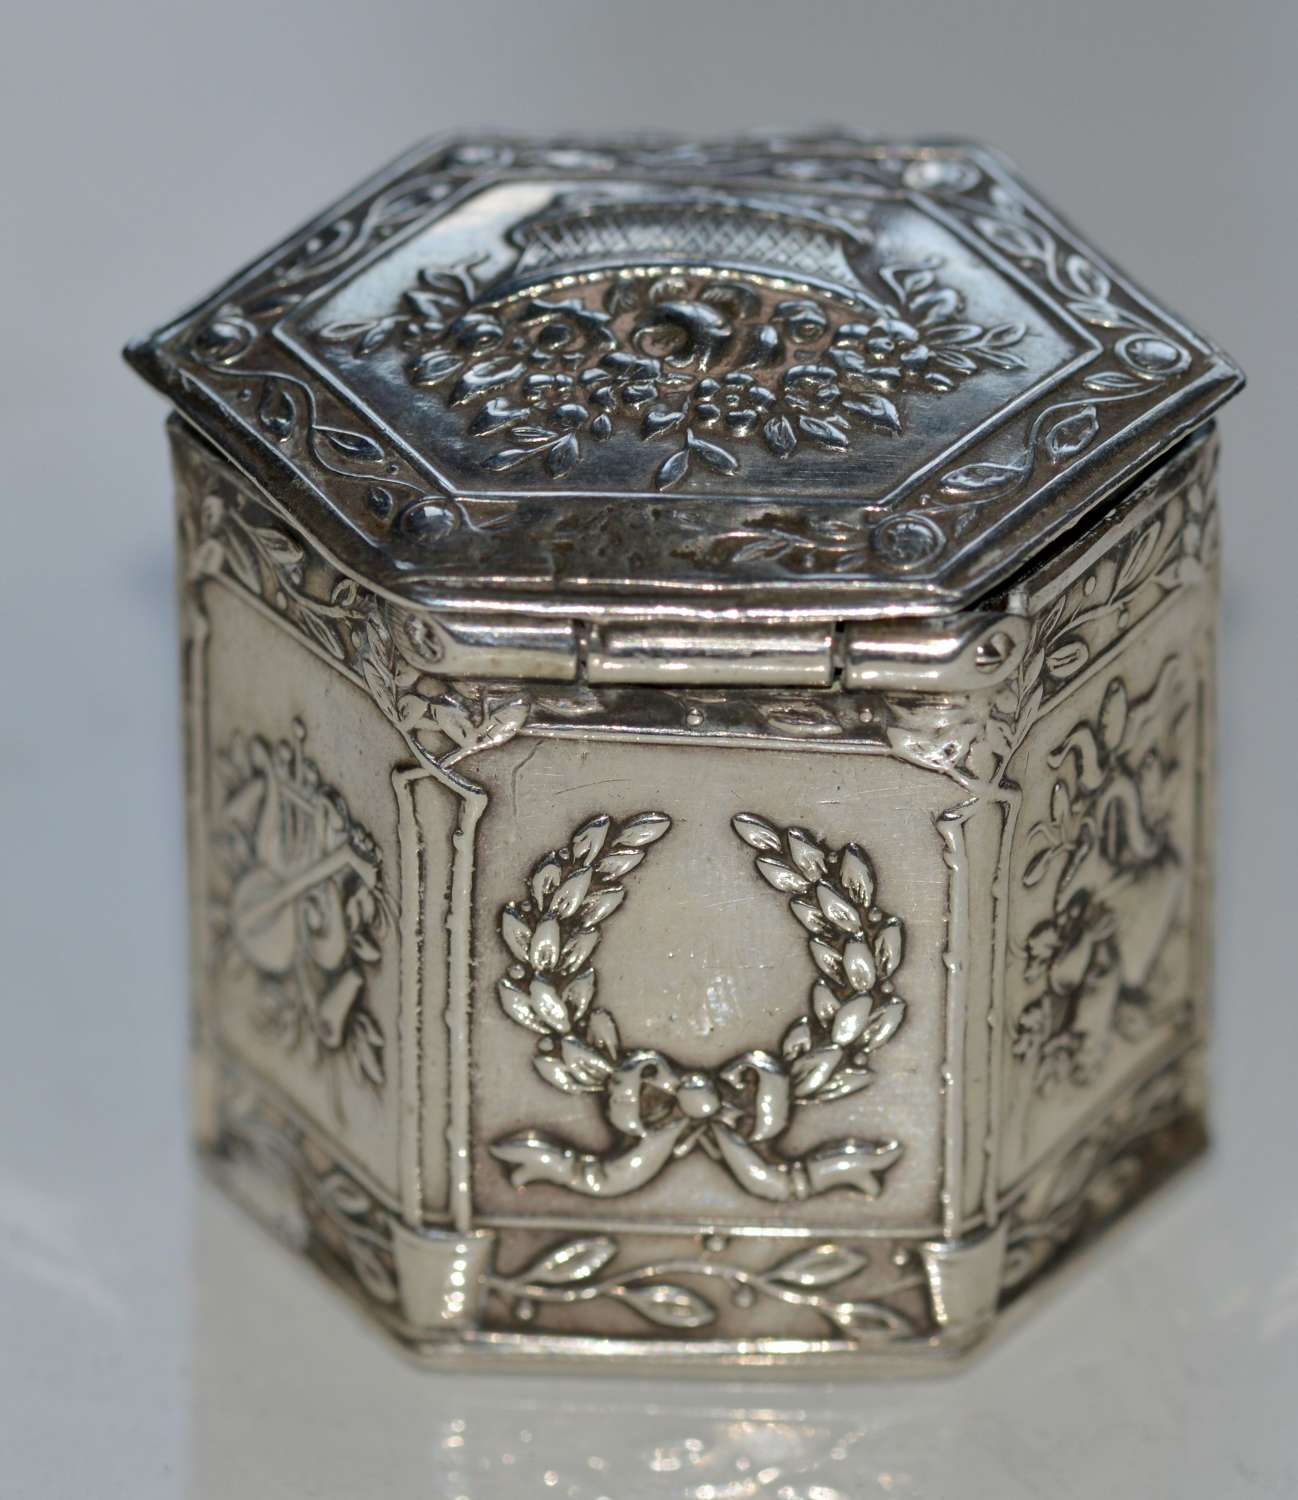 1906 Solid Silver Pill Box - Art Nouveau by Edwin Thomas Bryant